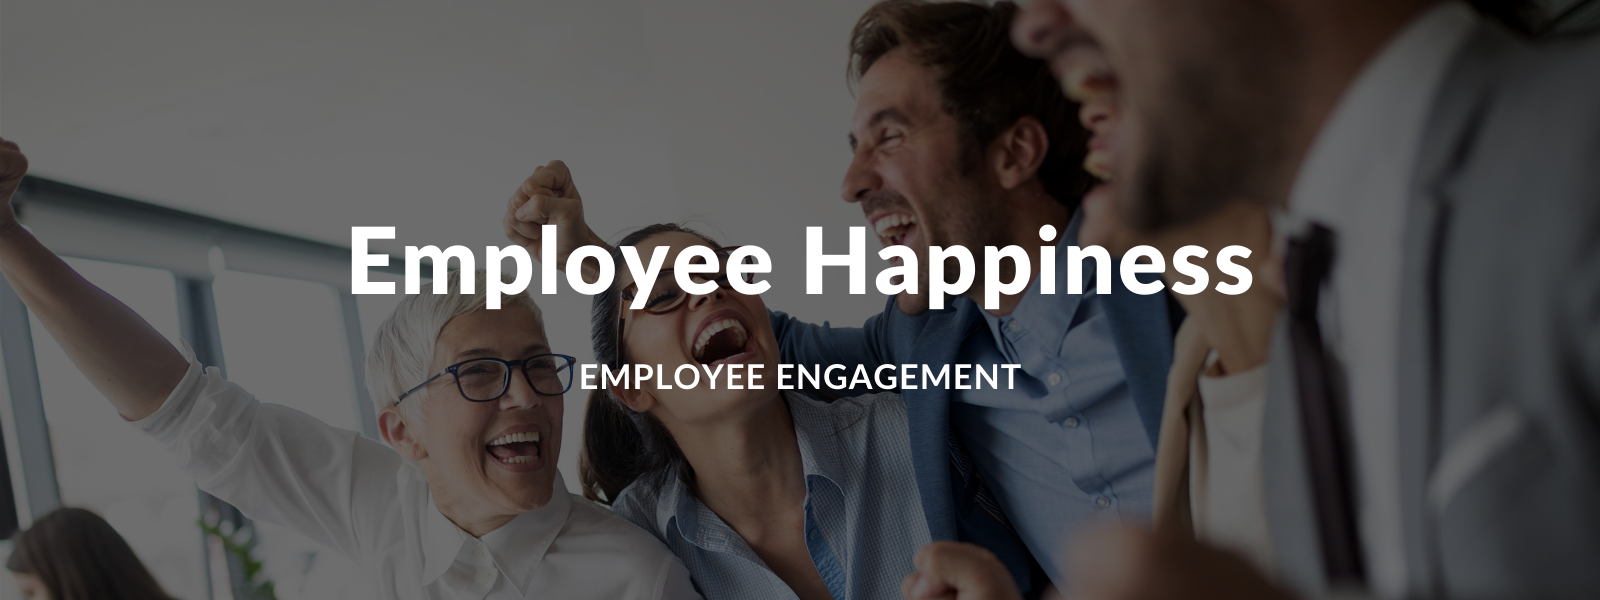 10 essentials you need to boost employee happiness according to research | Talaera Business English Training